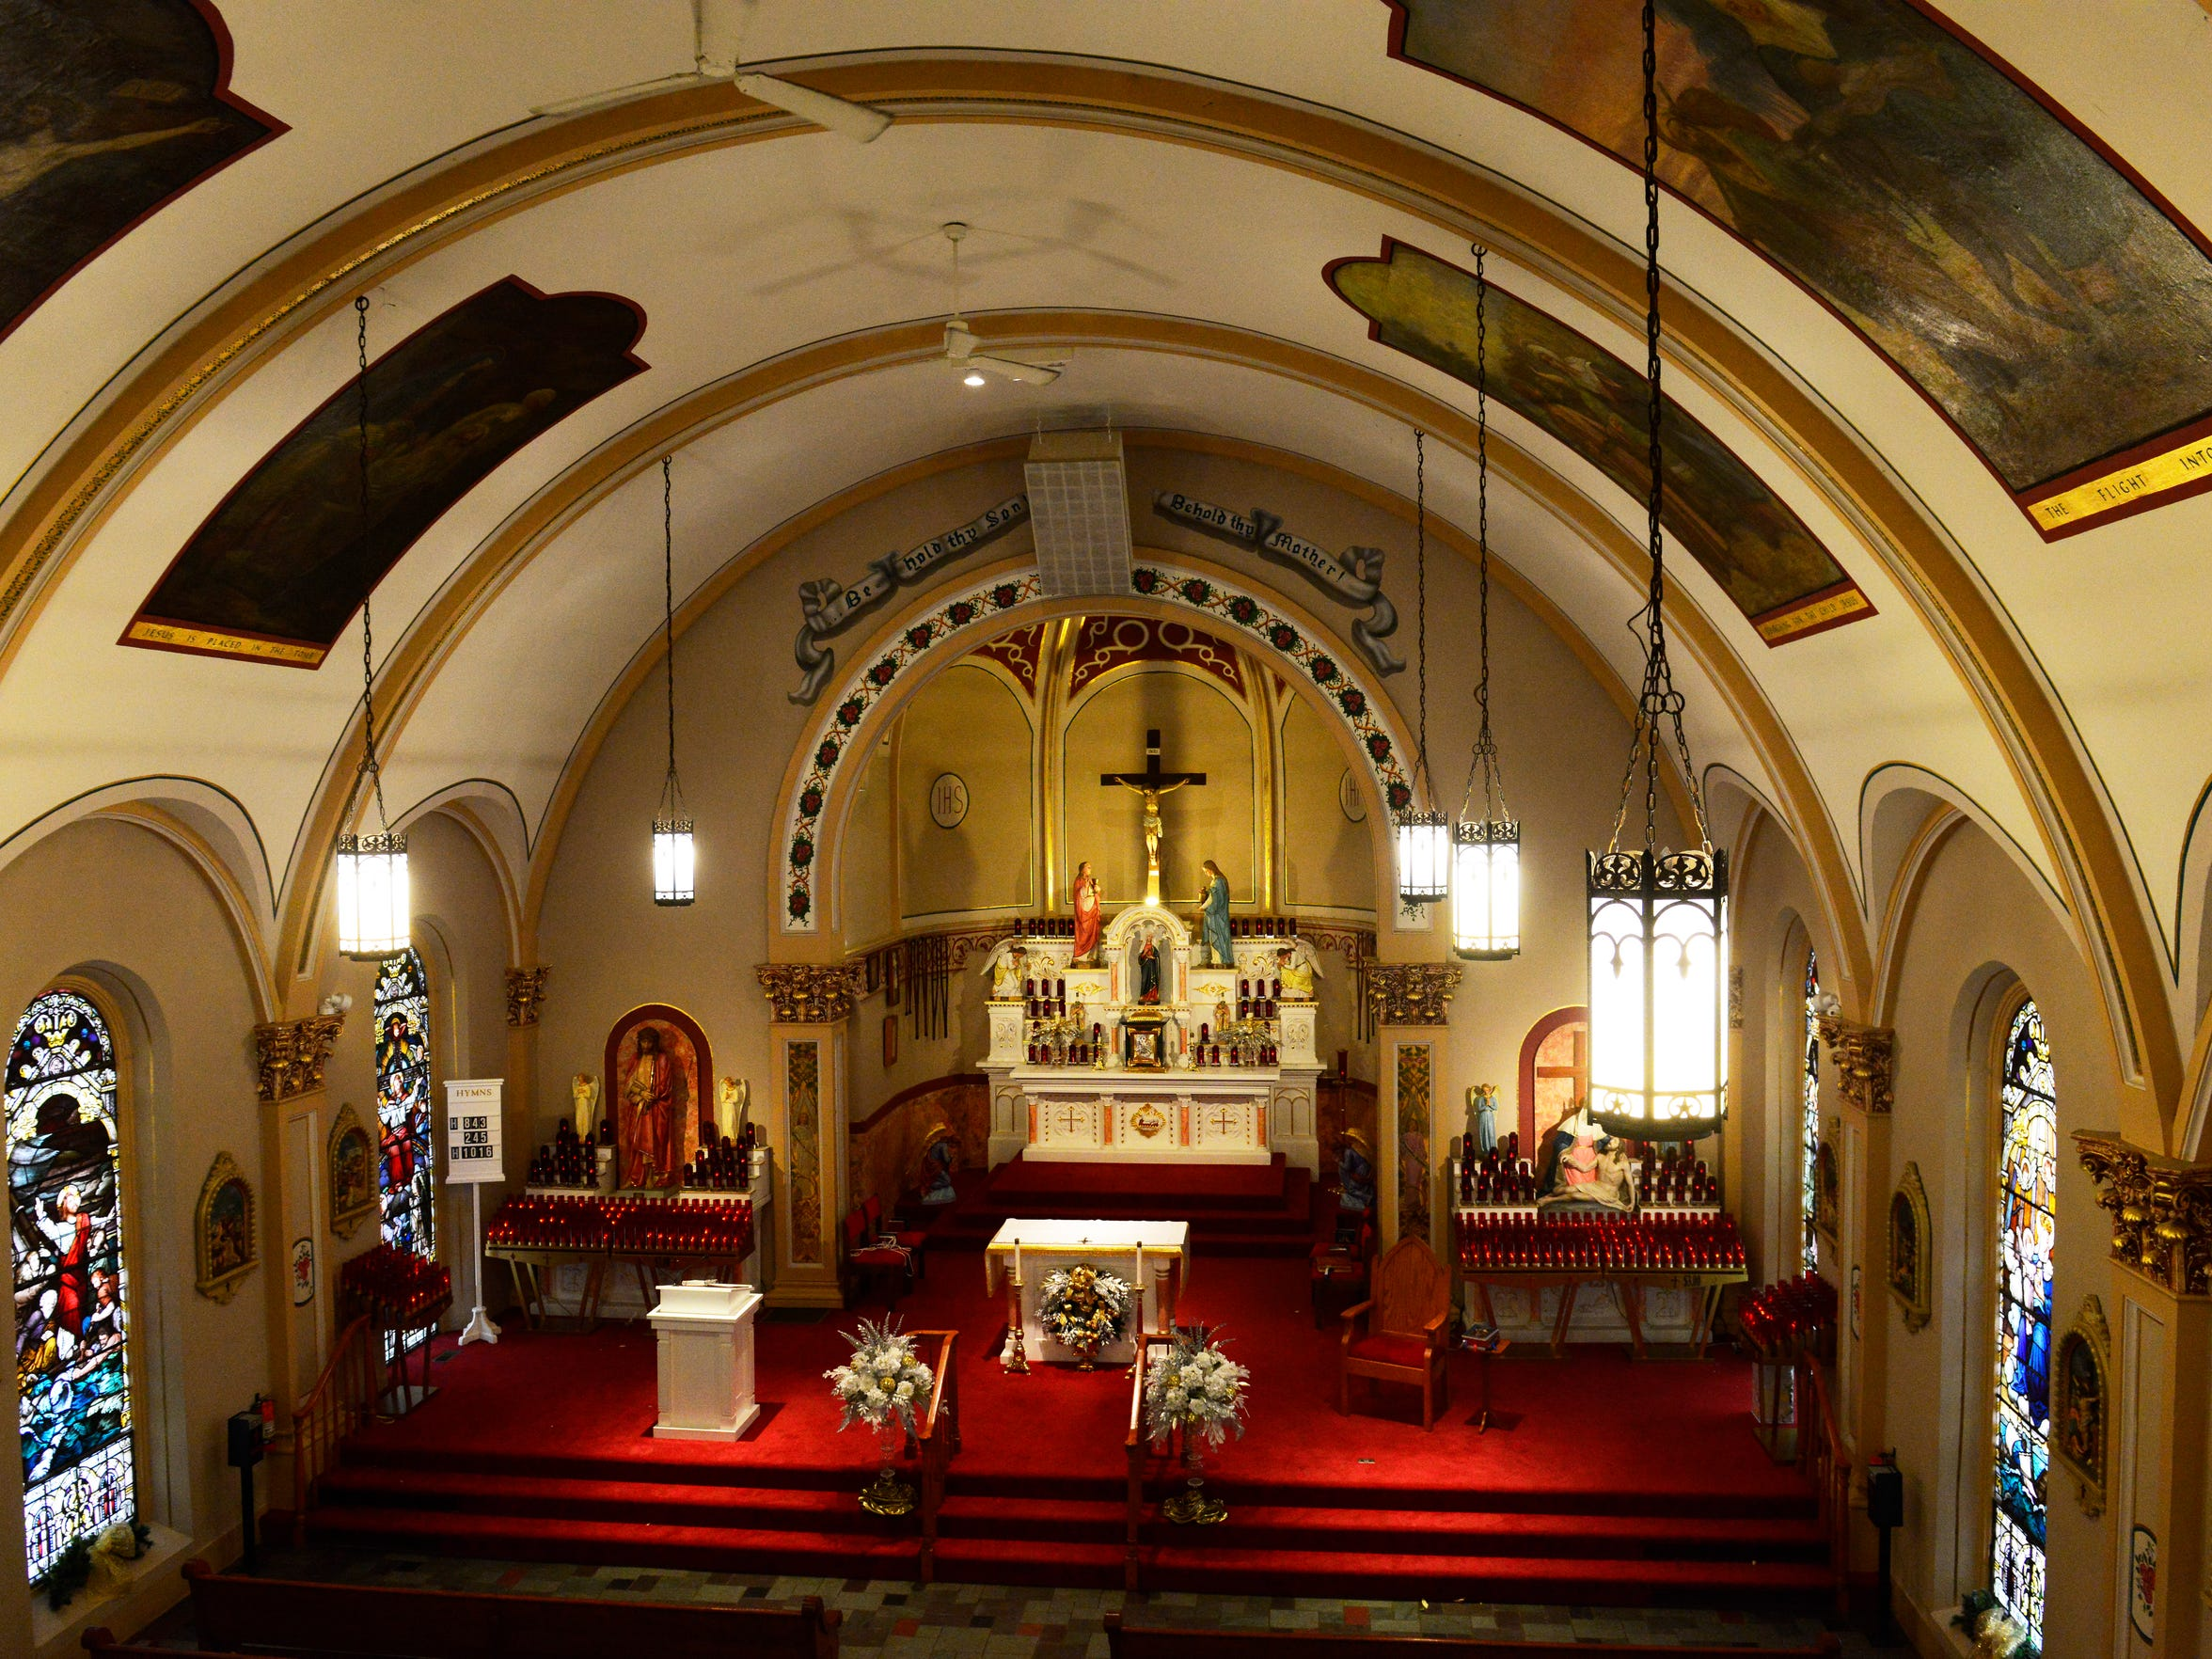 Founded by Father Francis de Sales Brunner in 1850, the shrine is the oldest of its kind east of the Mississippi River.